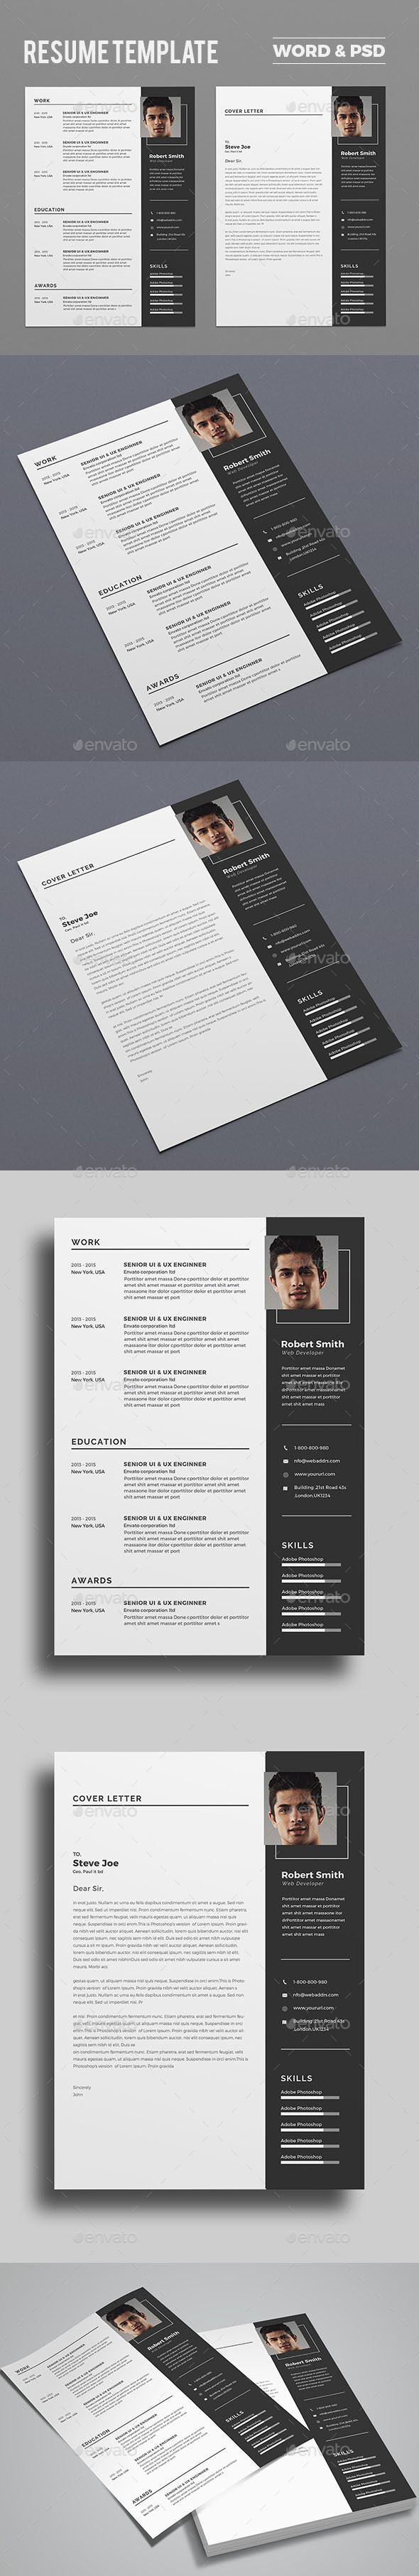 Resume by Paulresume 49 best Resumes